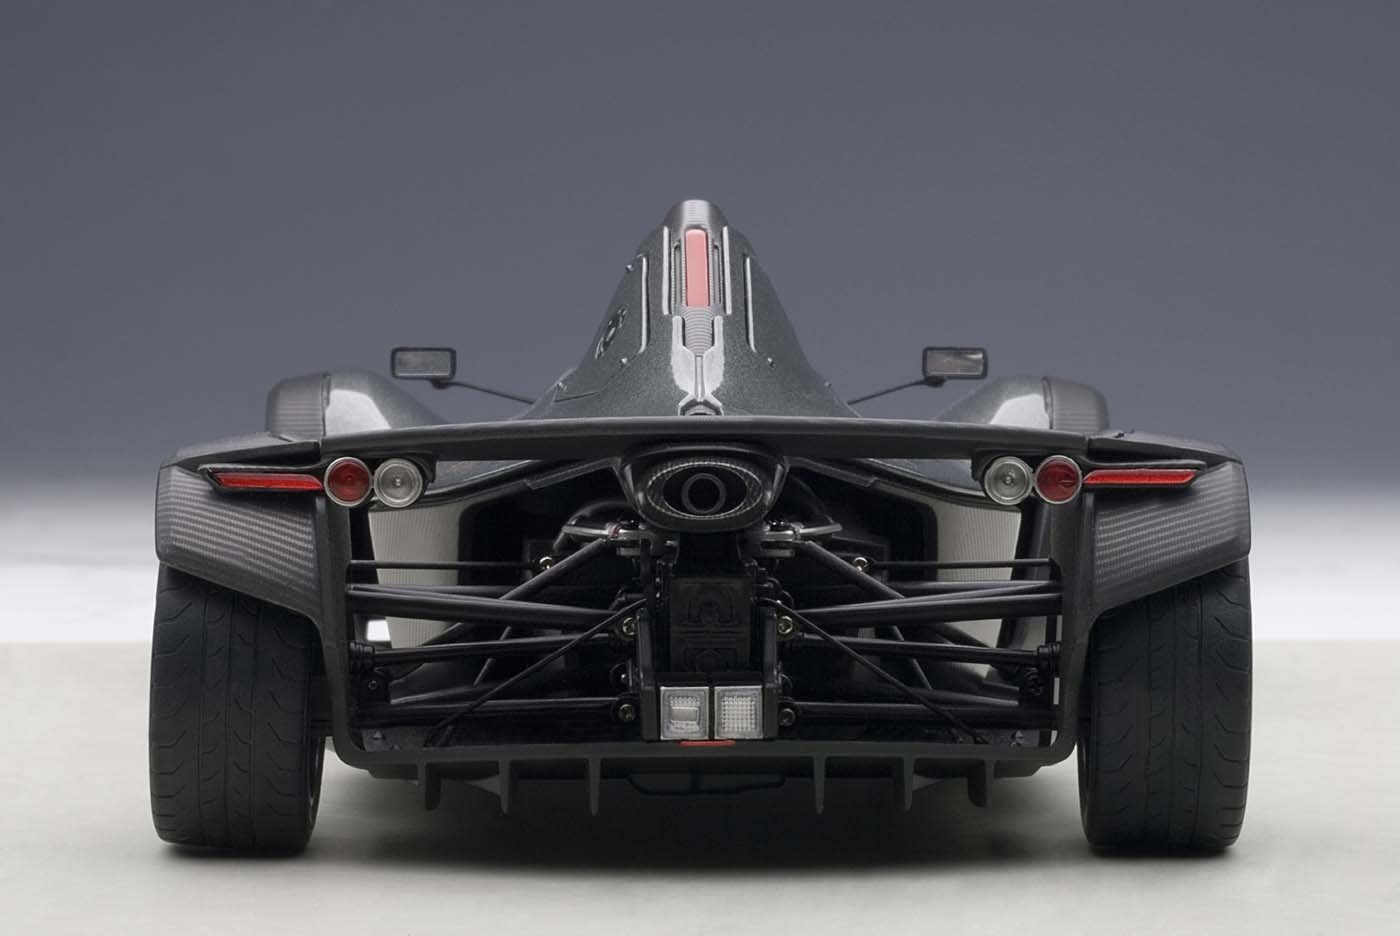 Bac Mono For Sale >> AUTOart Highly detailed die-cast model BAC Mono Gunmetal ...